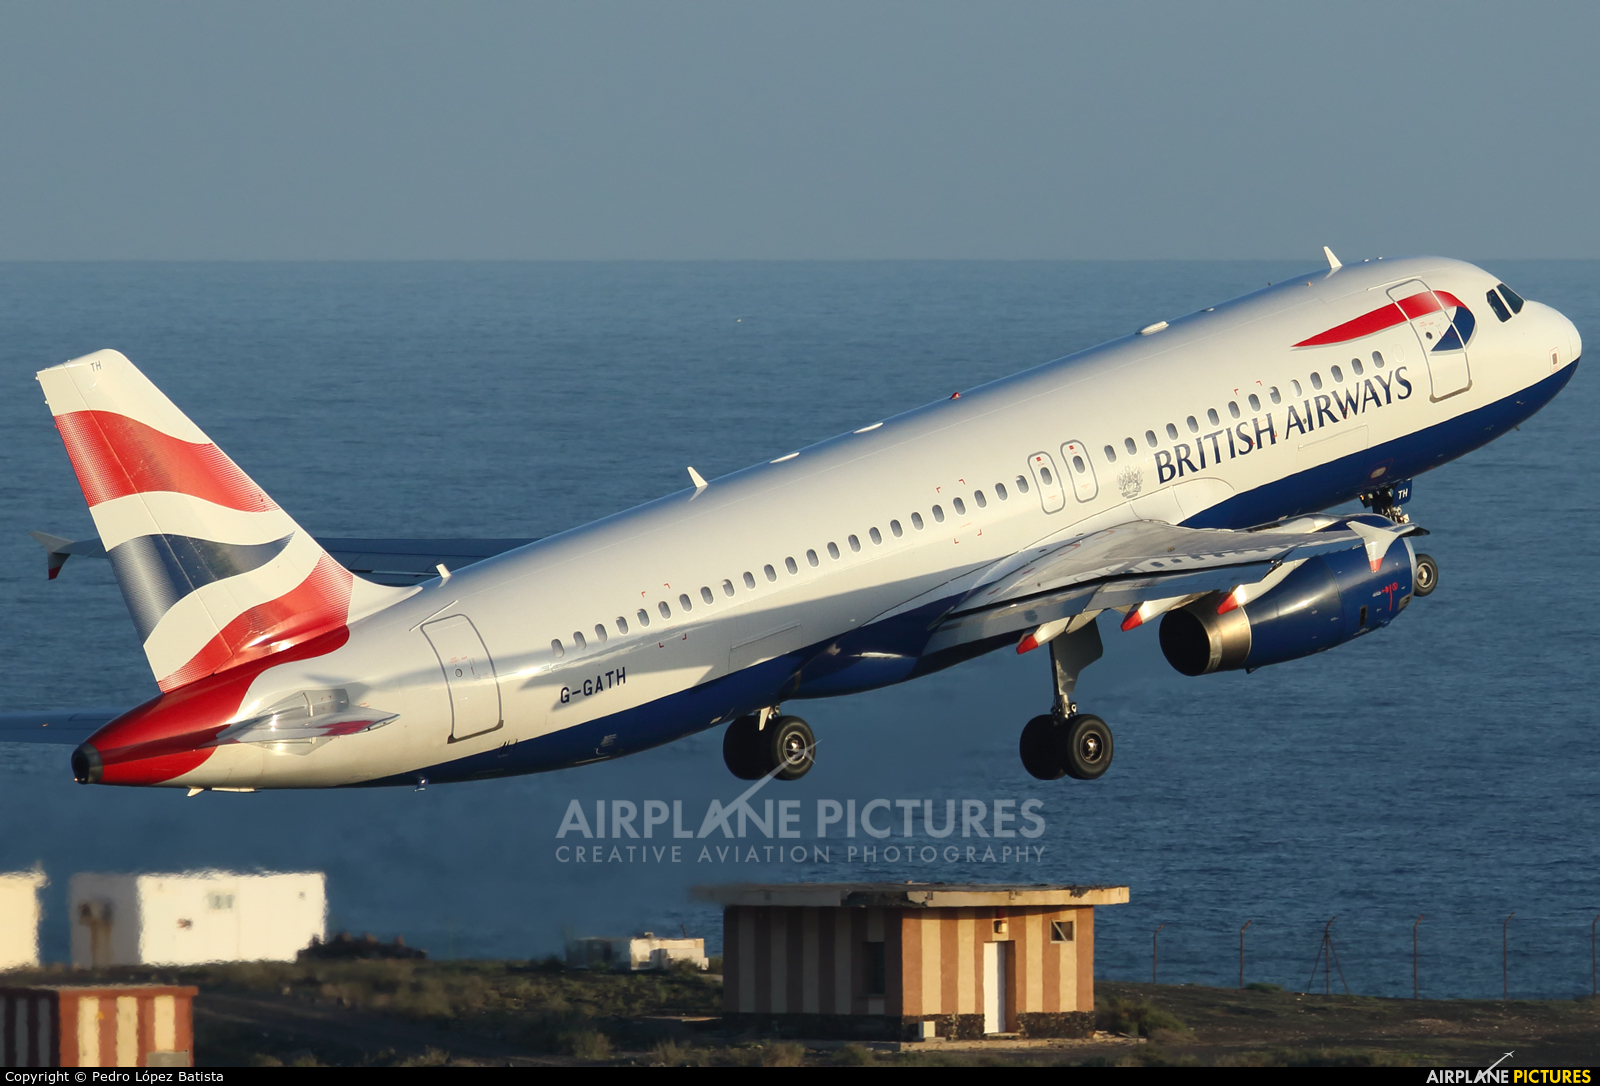 British Airways G-GATH aircraft at Fuerteventura - Puerto del Rosario